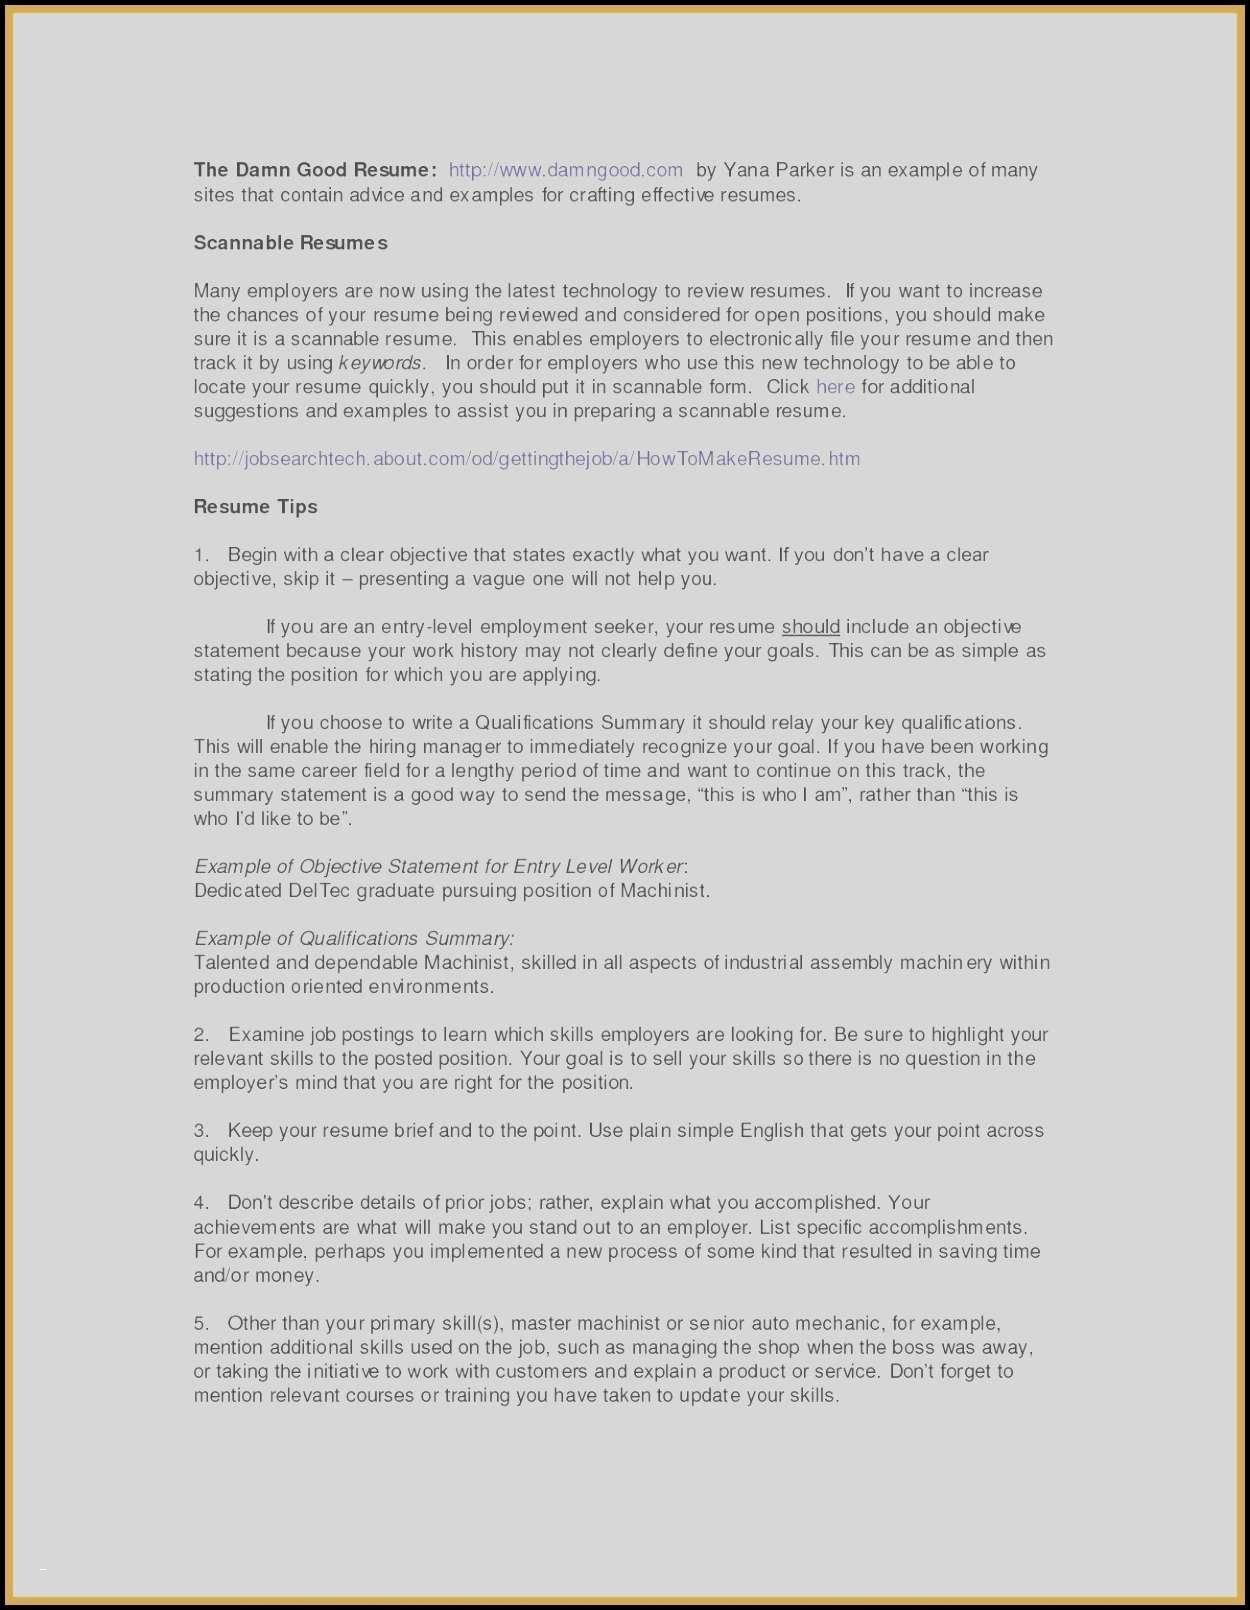 Resume Objective Statement Law Enforcement Resume Objective Elegant 50 Resume Objective Examples Career Objectives For All Jobs Tips It Of Law Enforcement Resume Objective resume objective statement wikiresume.com